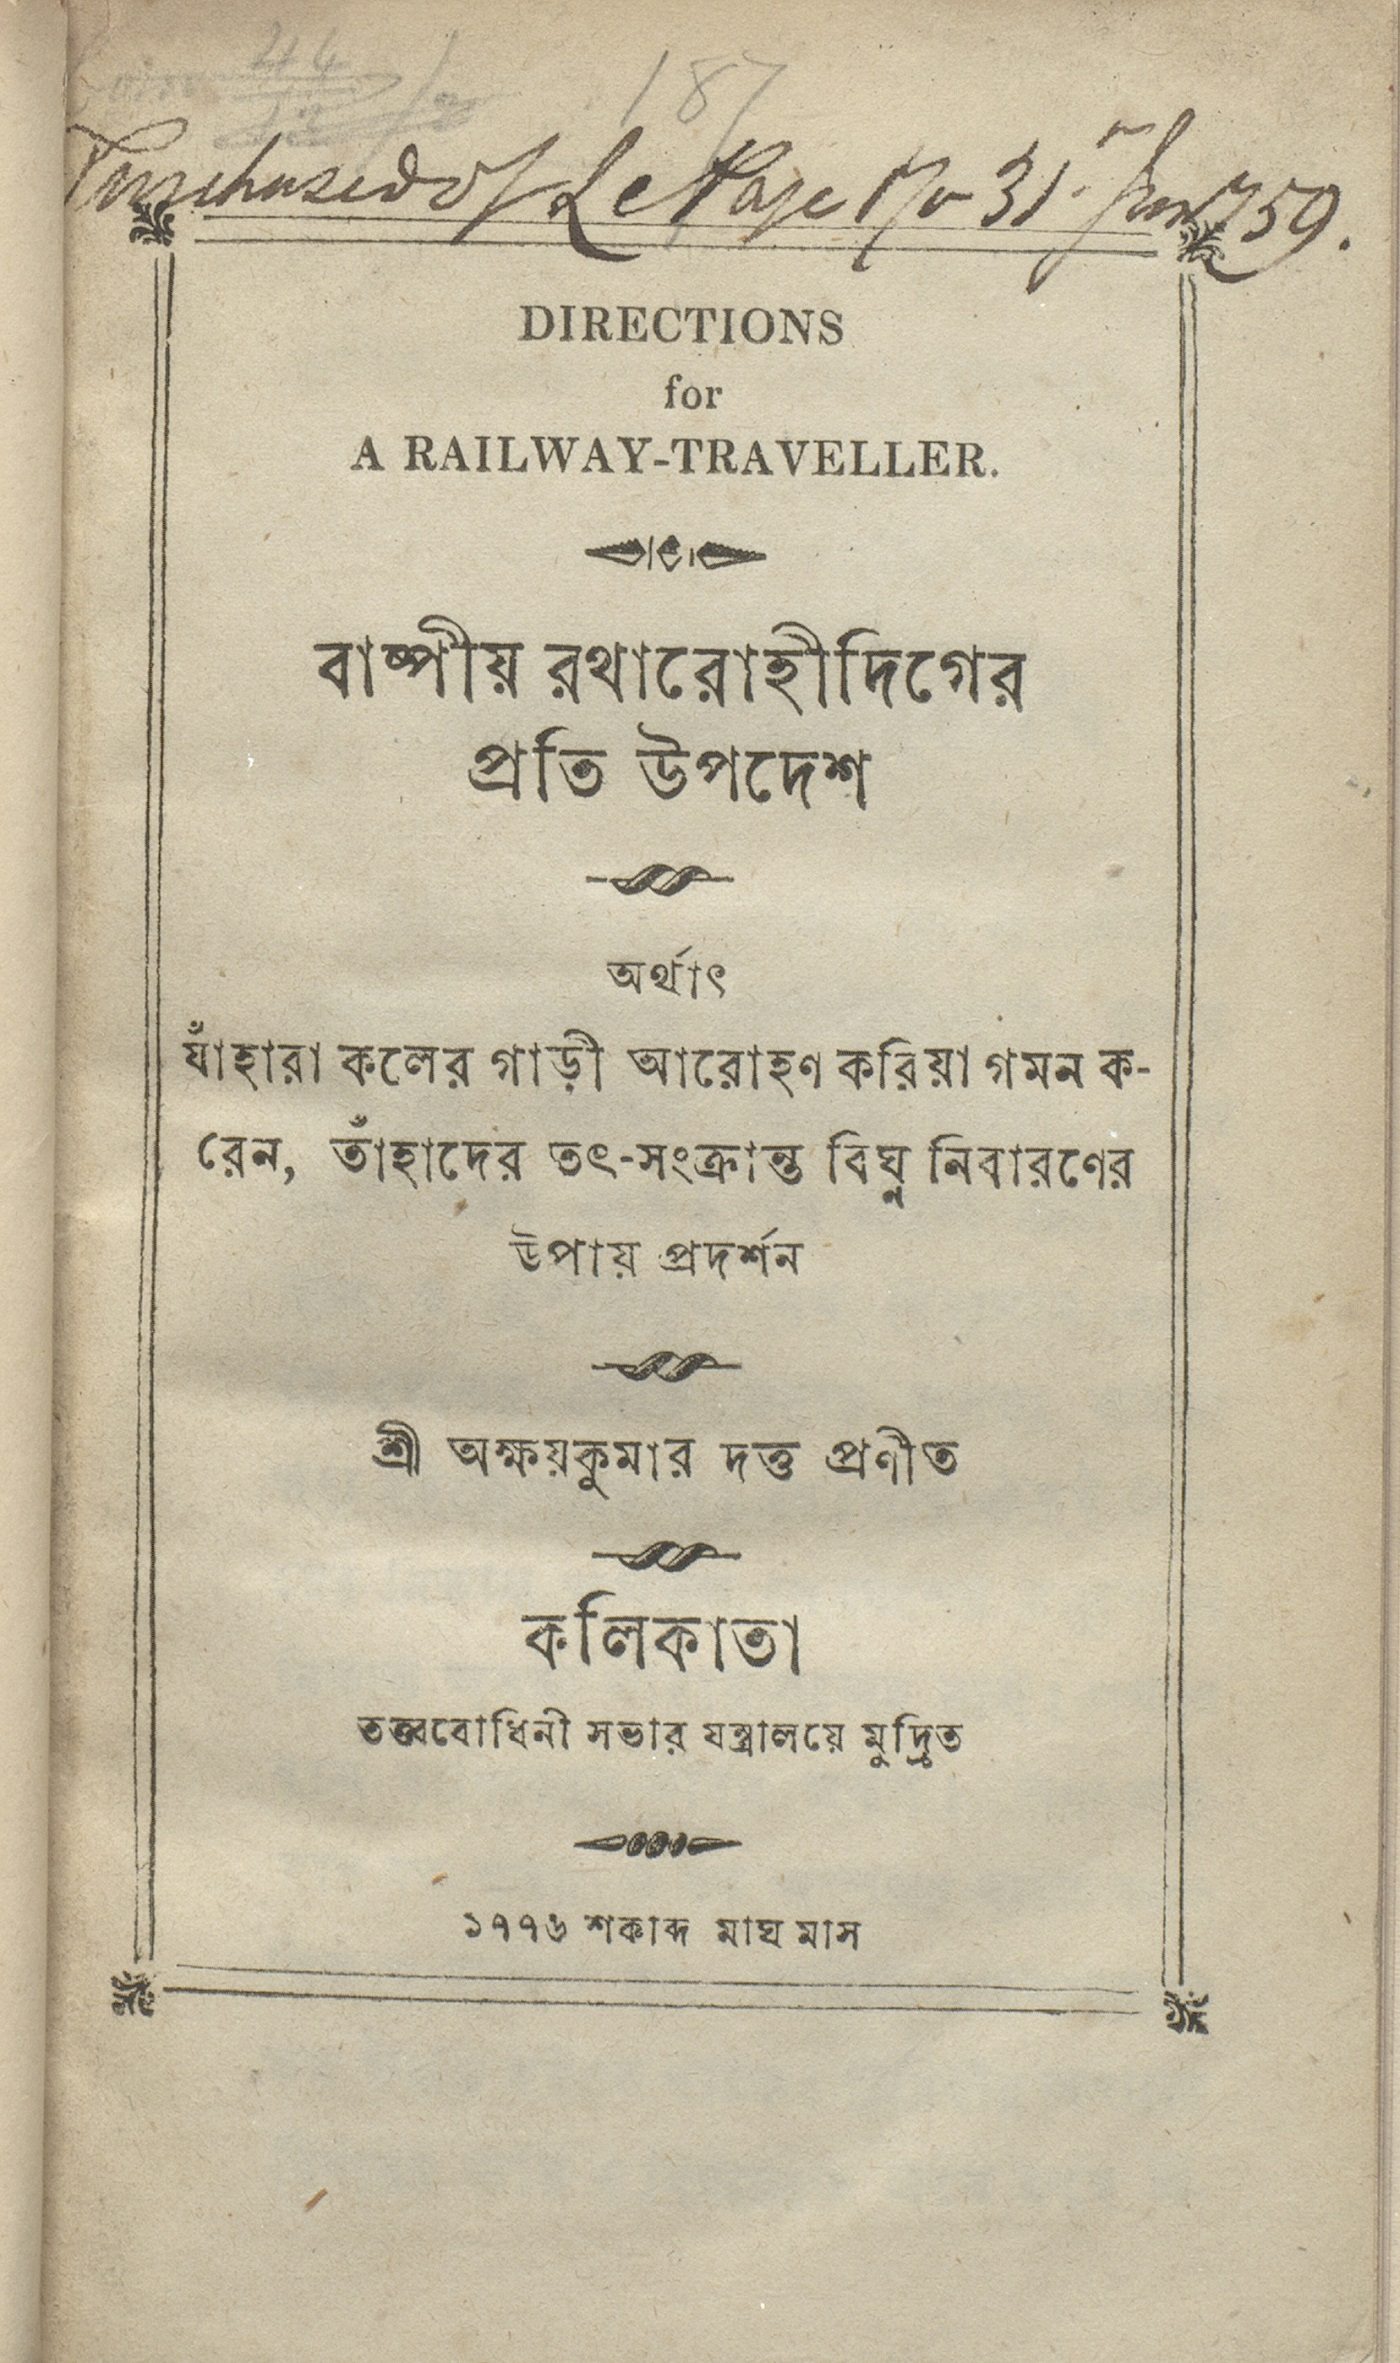 Title page to 'Directions for a railway-traveller', part of the British Library's South Asian printed books collection and digitised through the Two Centuries of Indian Print project.